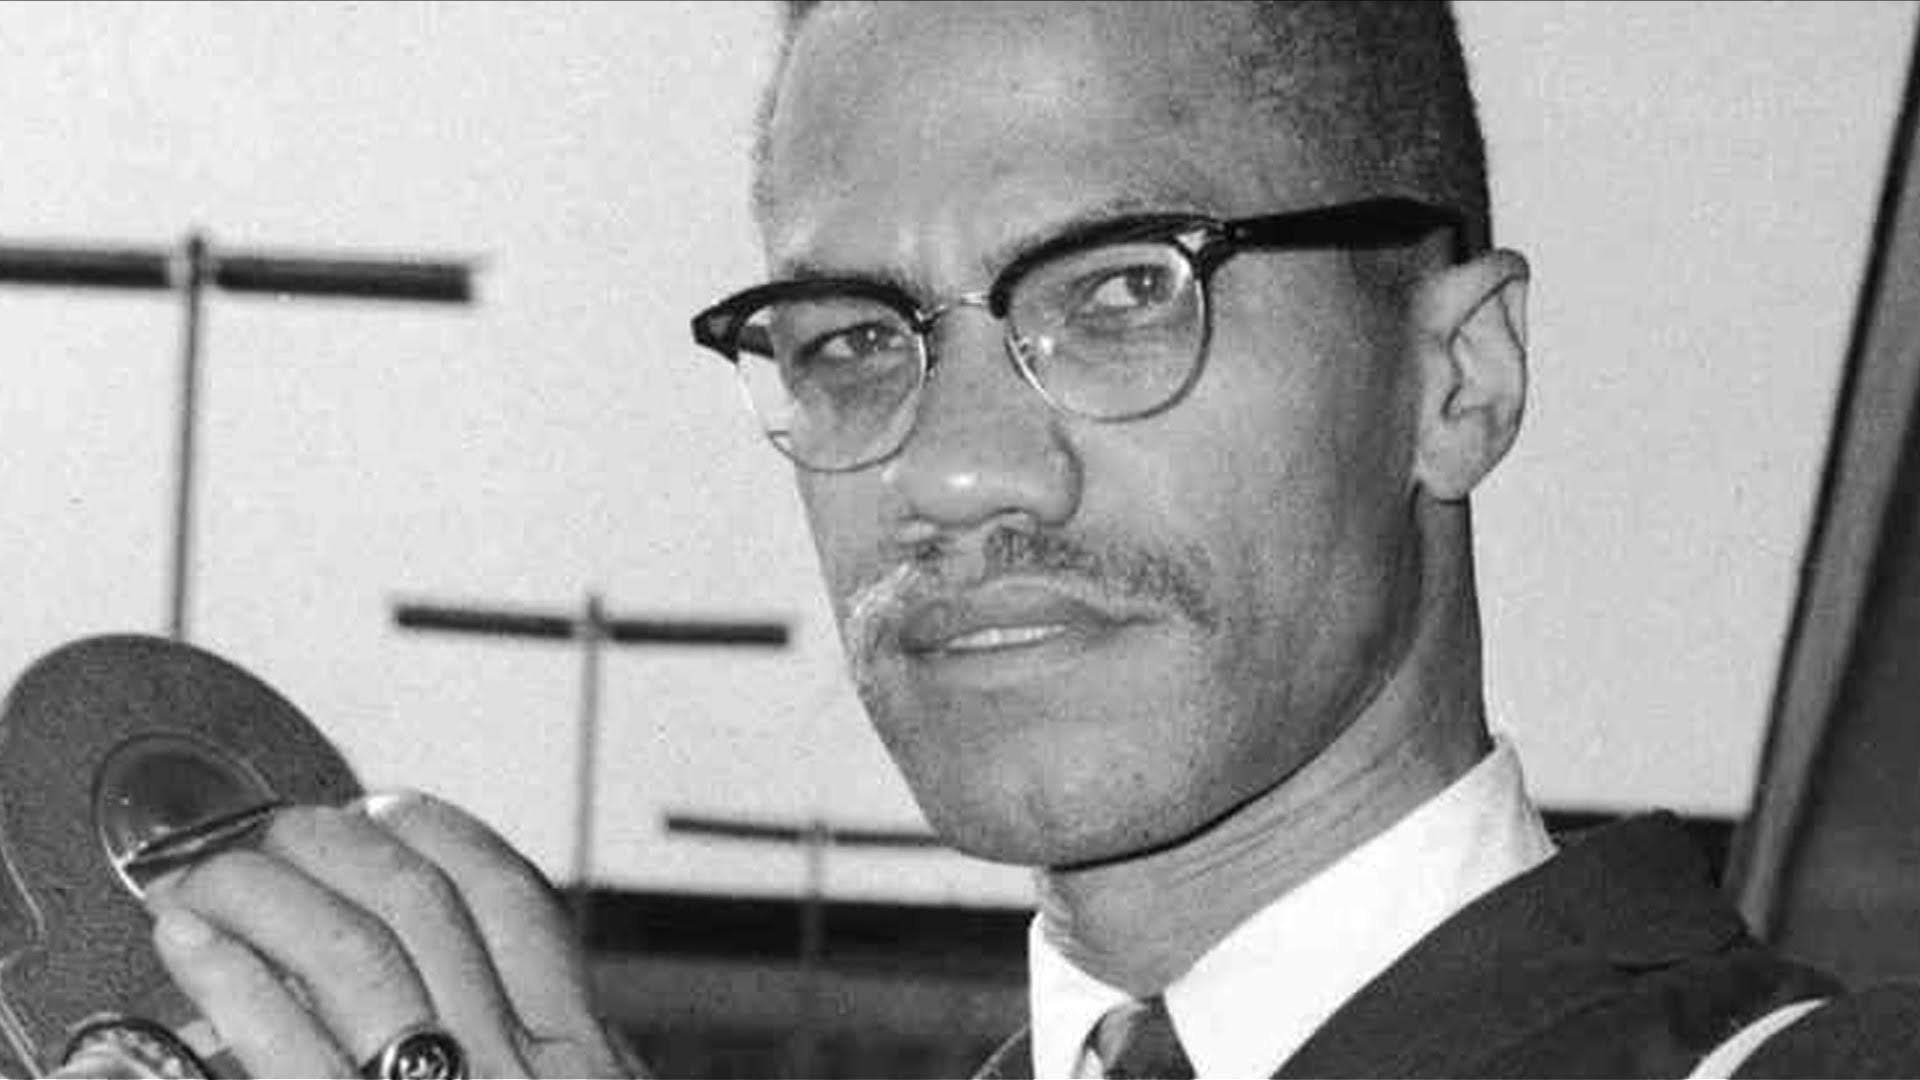 1920x1080 ... he changed minds malcolm x remembered by daughter ilyasah malcolm x gun  wallpaper